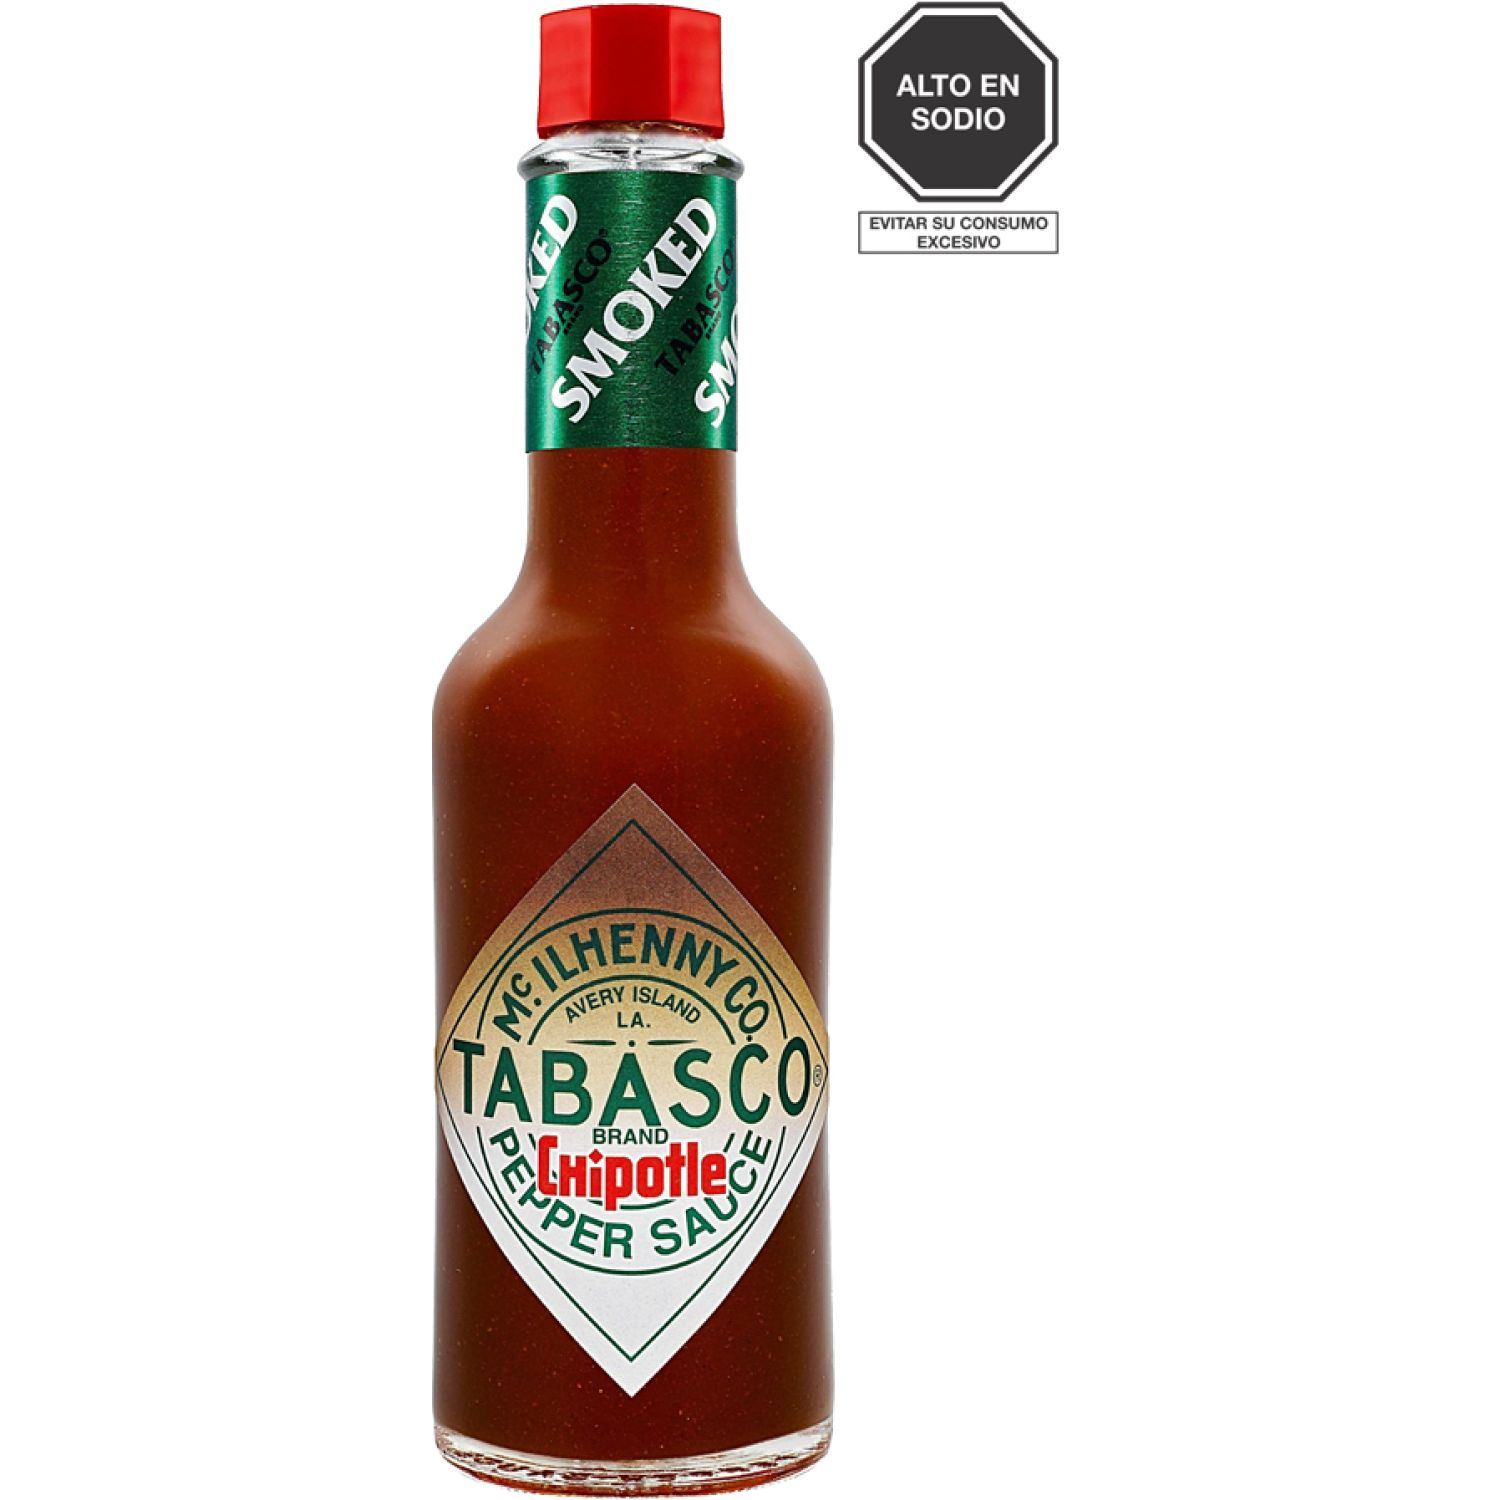 TABASCO Salsa Chipotle X 150ml Sin color Salsa picante